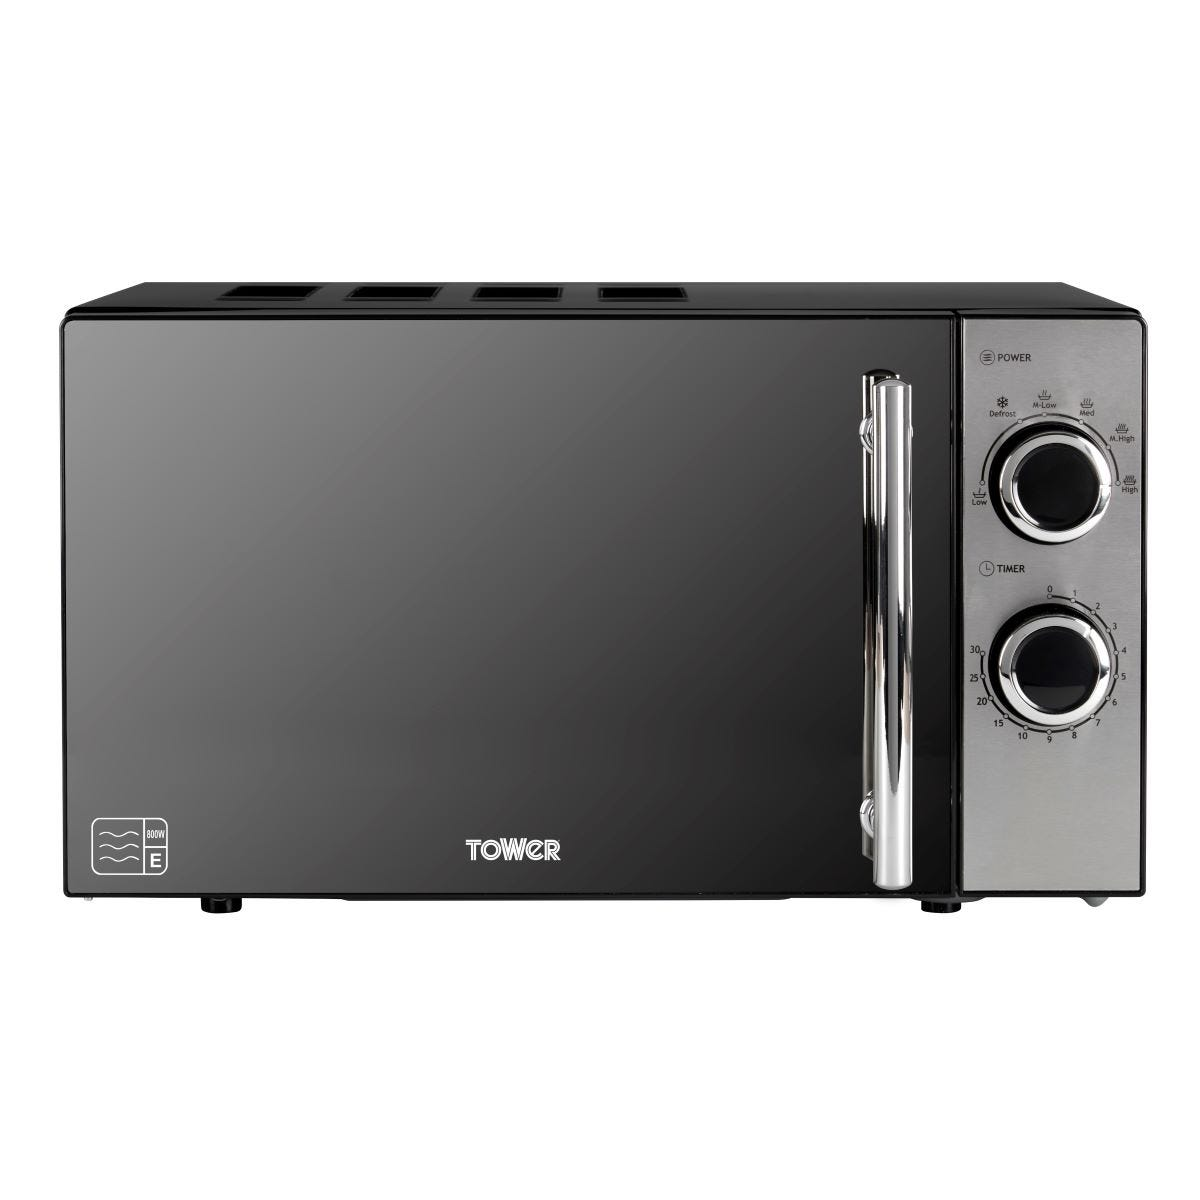 Tower T24015 800W 20L Manual Microwave - Grey